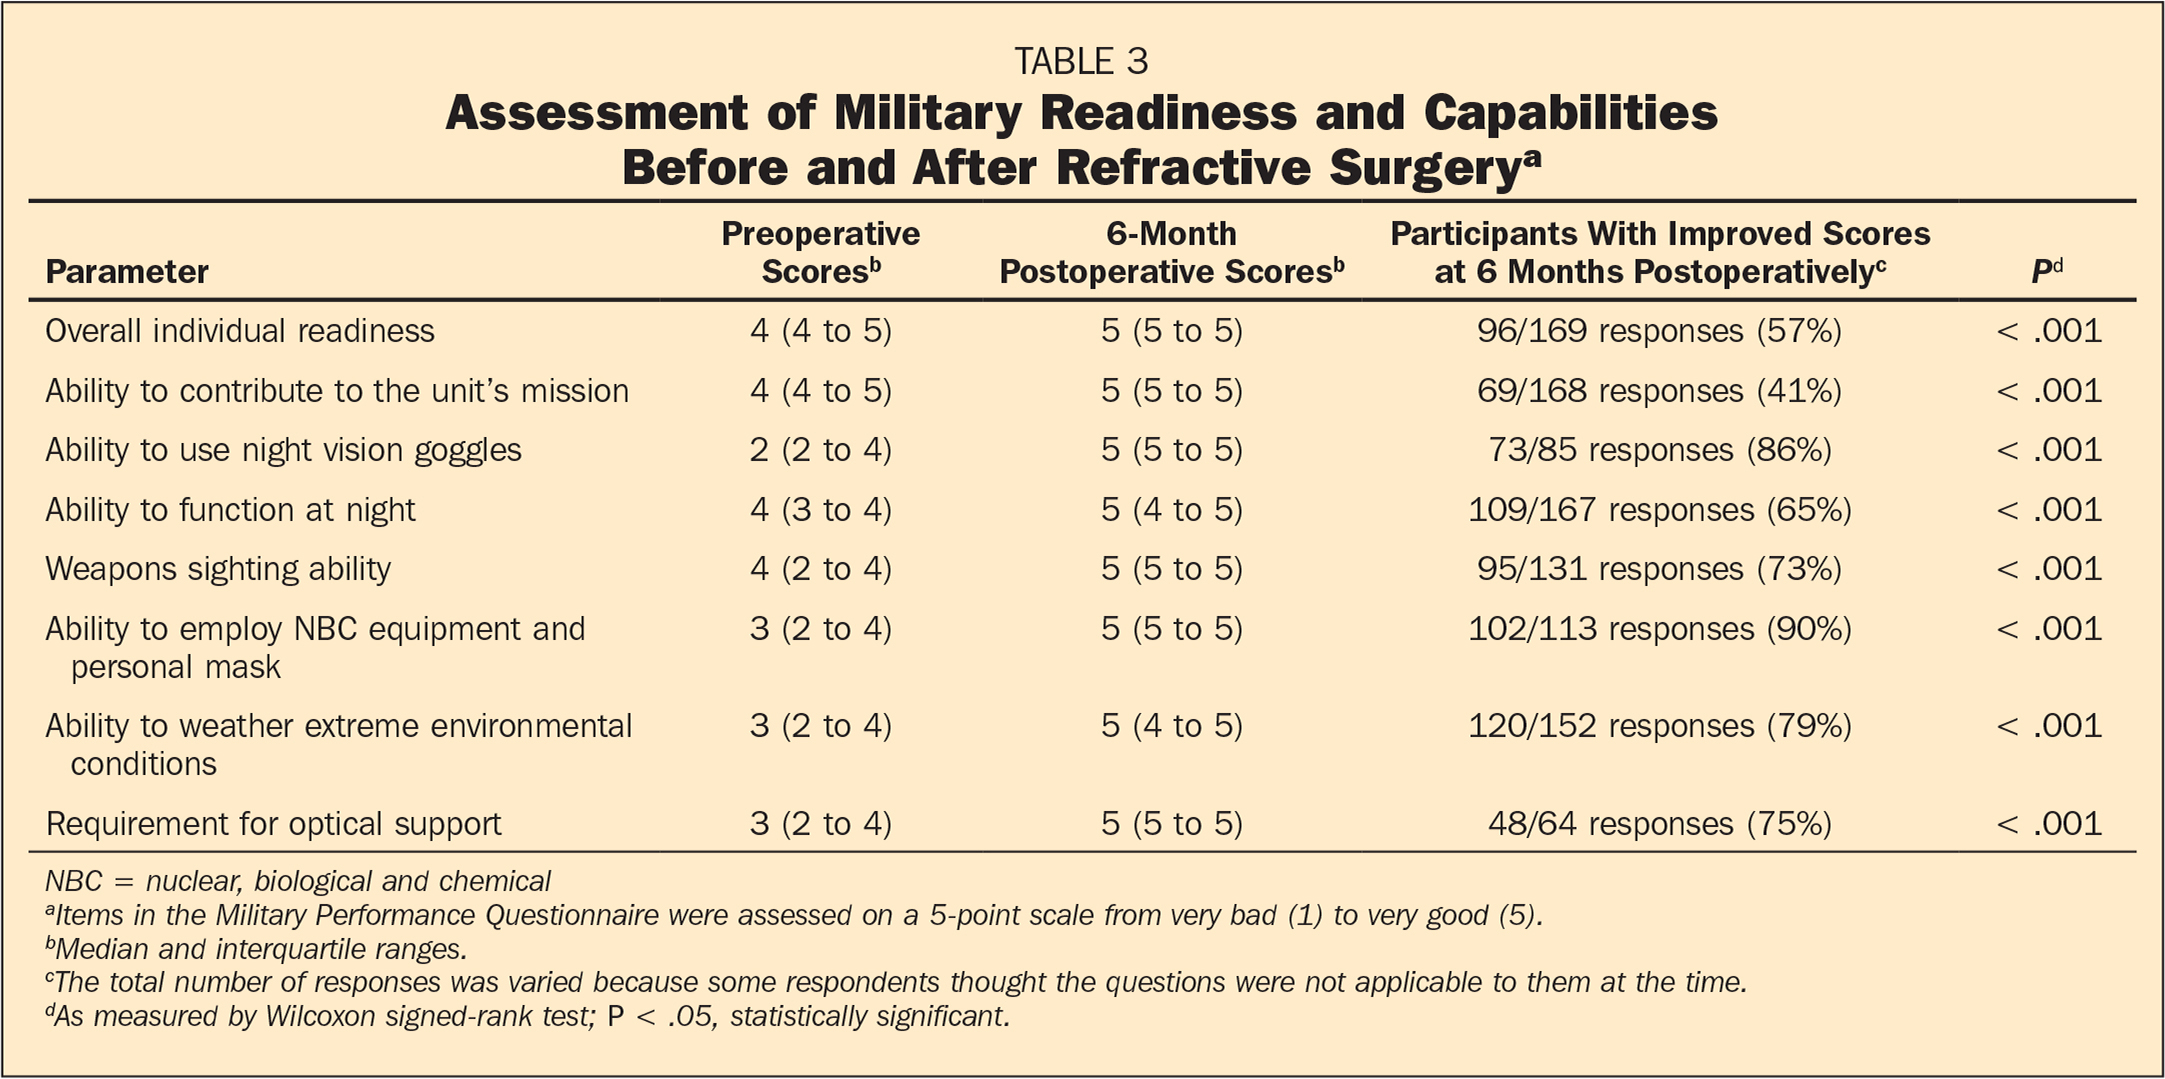 Assessment of Military Readiness and Capabilities Before and After Refractive Surgerya